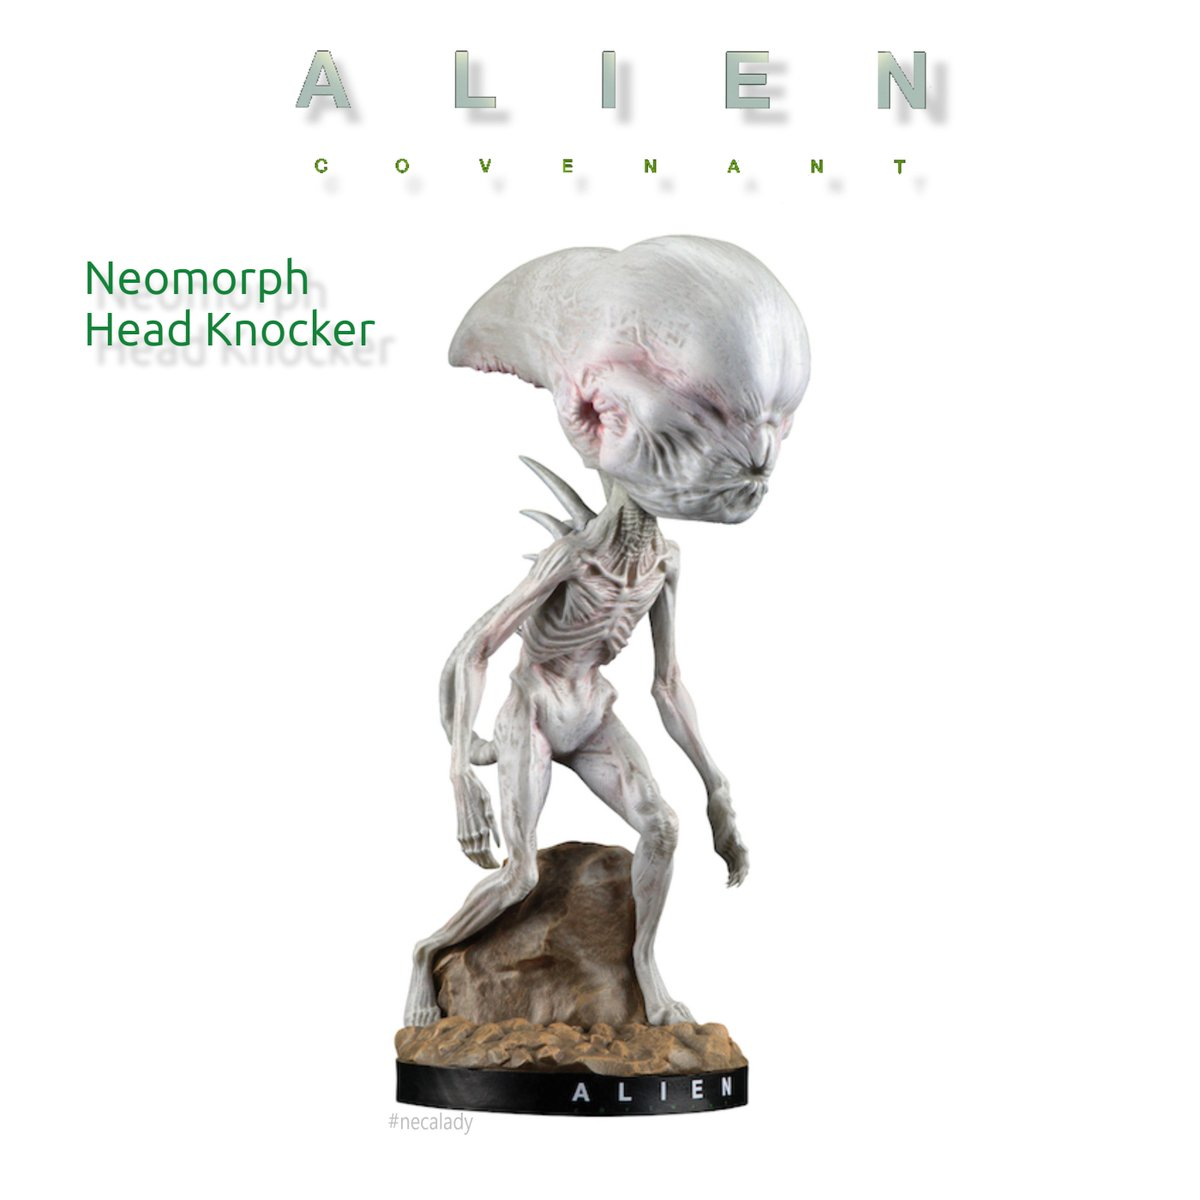 #NECA Arrival 8&quot; #AlienCovenant  #Neomorph cast in resin, hand-painted bobble head. Available at BOOTH 718 #necalady @frankandsonshow<br>http://pic.twitter.com/UKrgaaoi0C